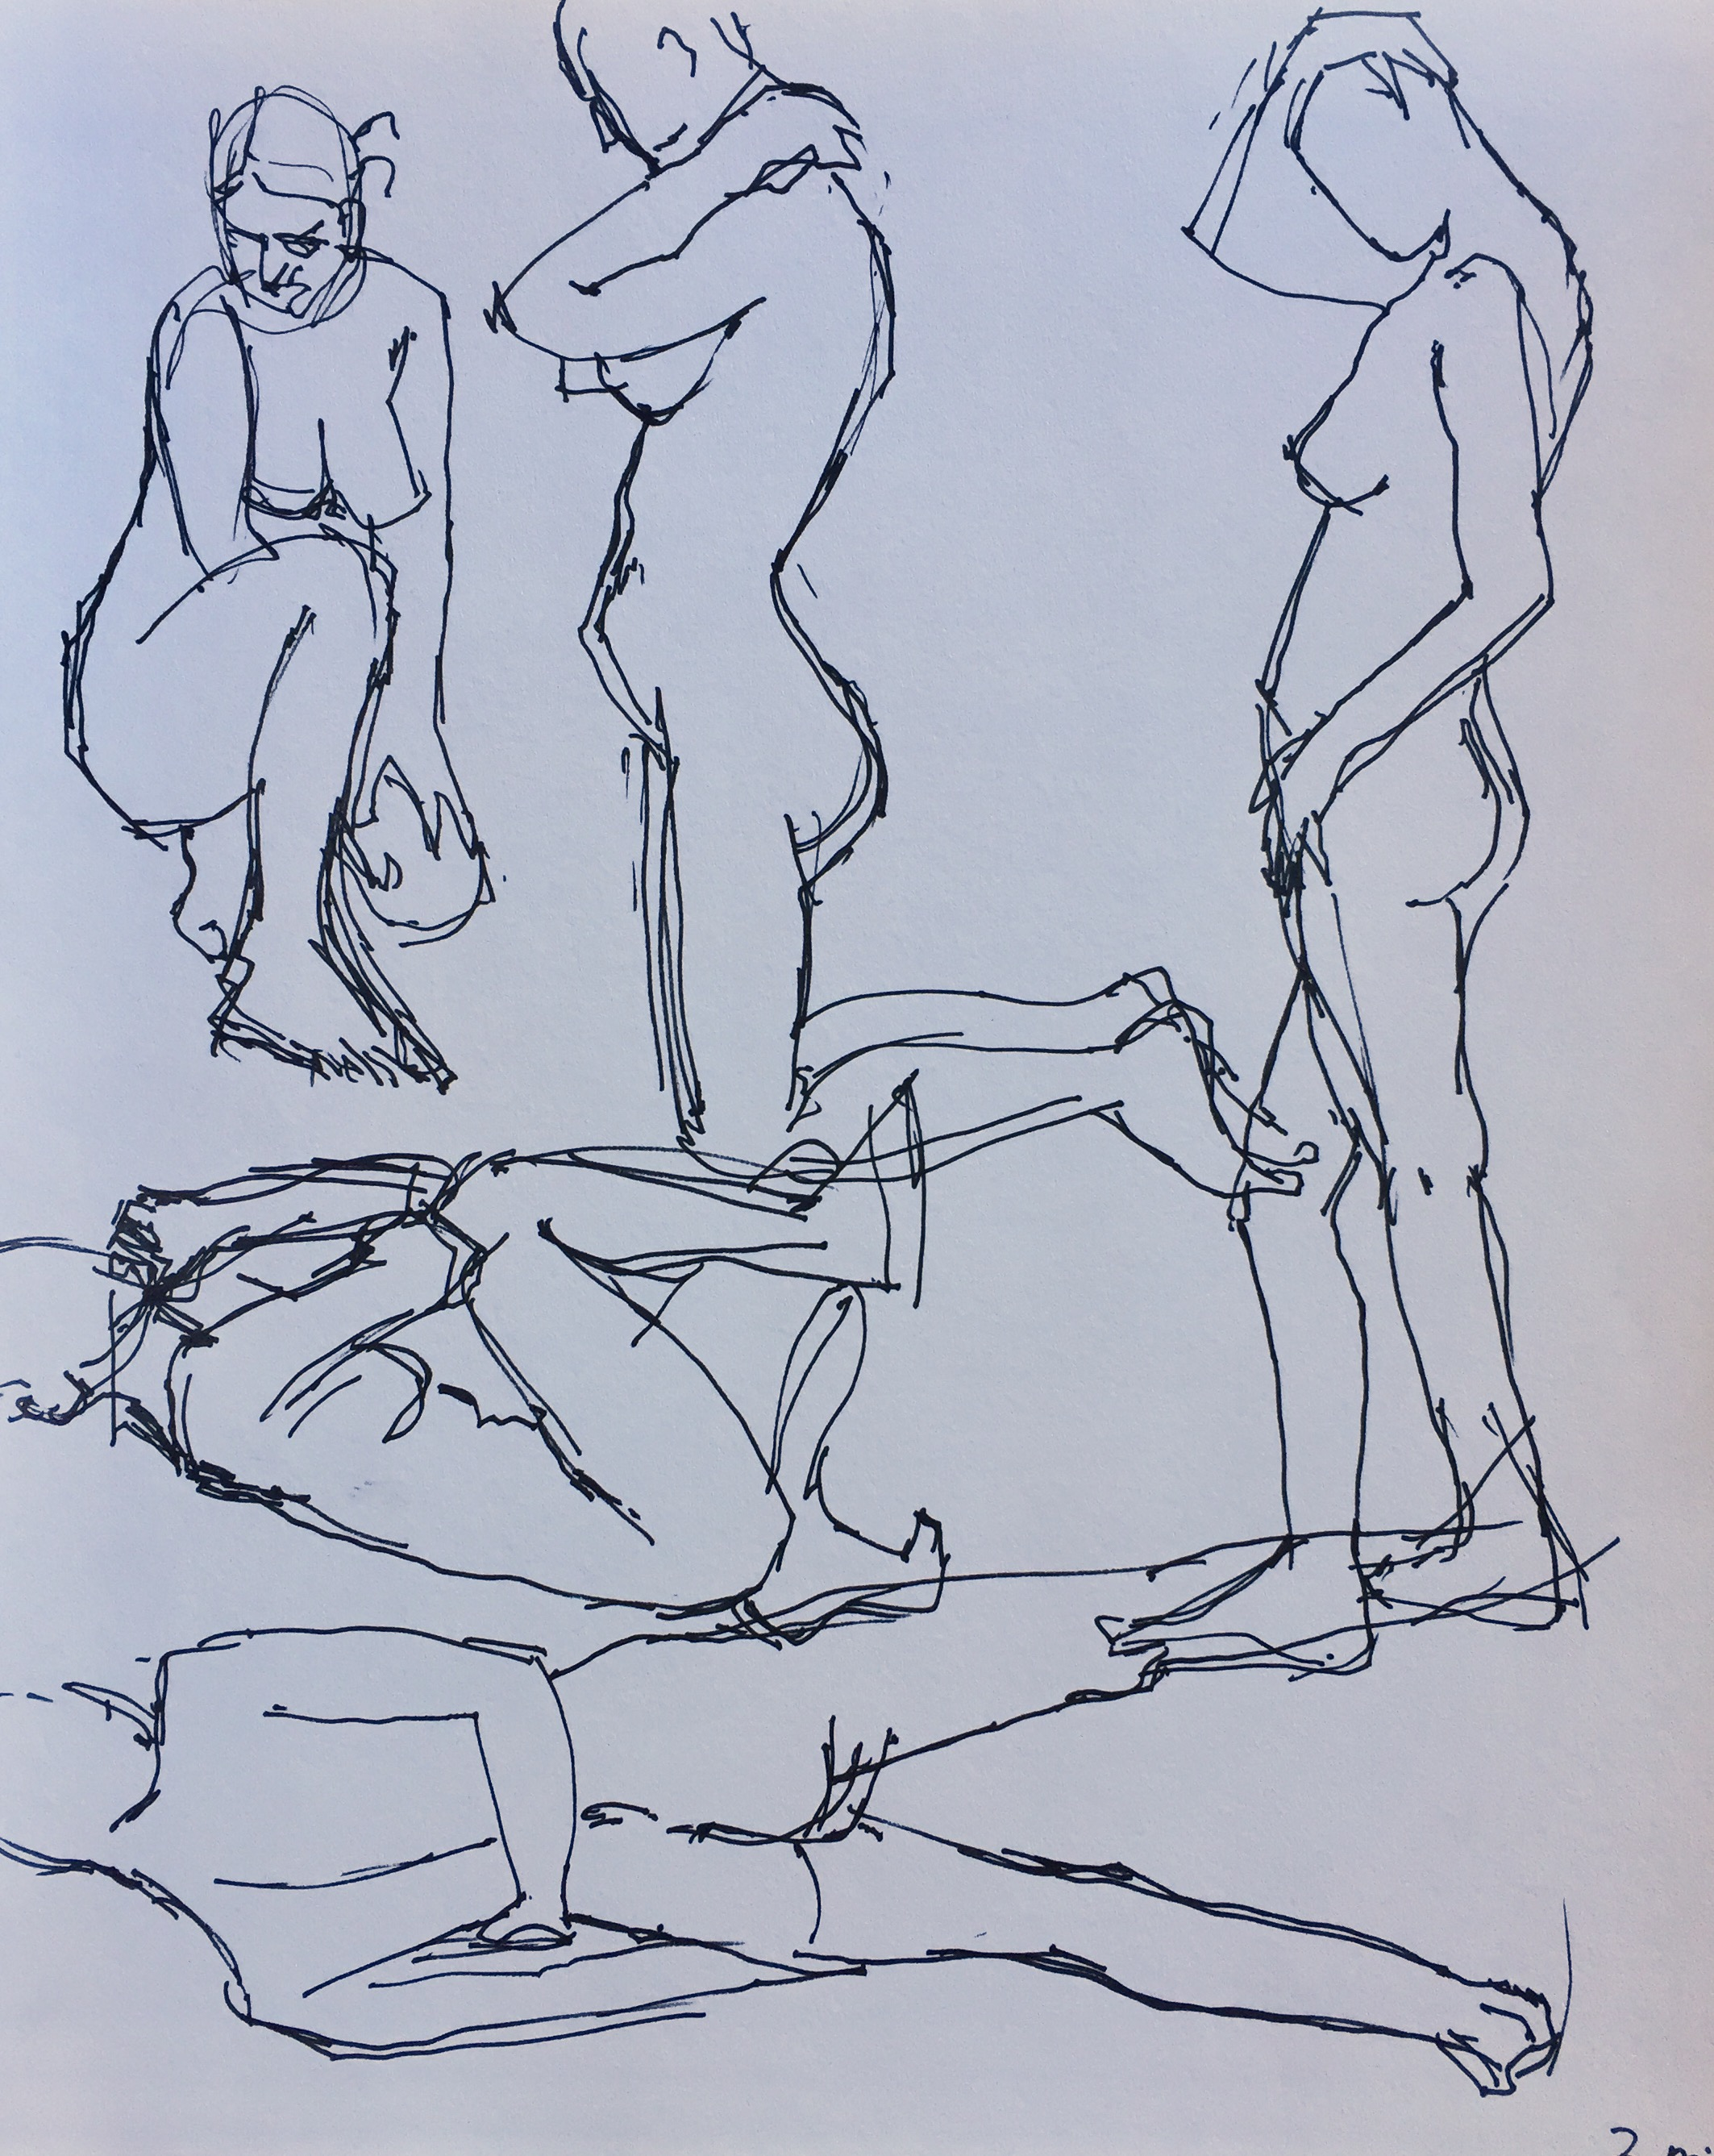 Life drawing: Two-minute poses